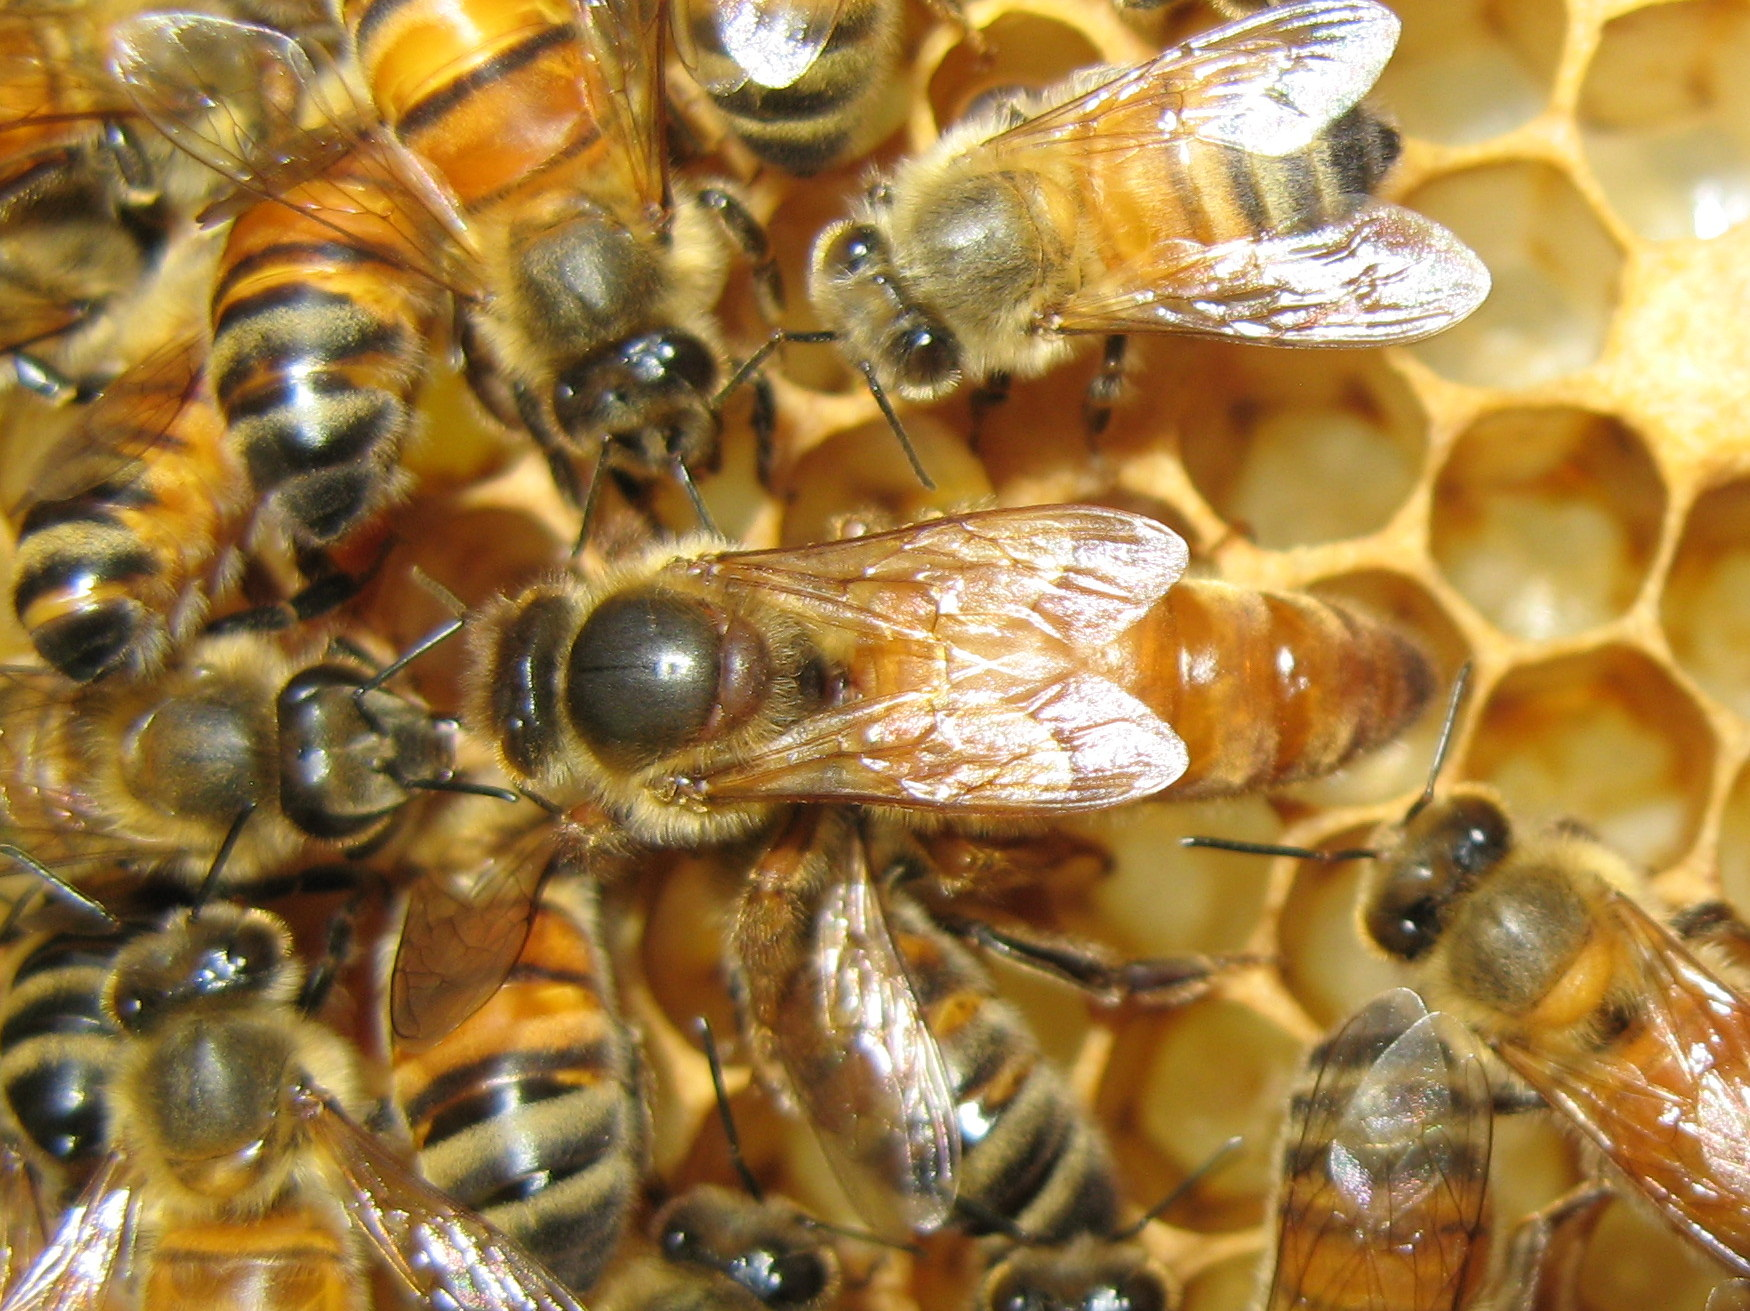 honey bees queen drone and worker with Honeybee Photos on Bie in addition Whats Wrong With My Hive together with 8254457543 97077cd3cc k also Honeybee Photos further PicturesOfBee.